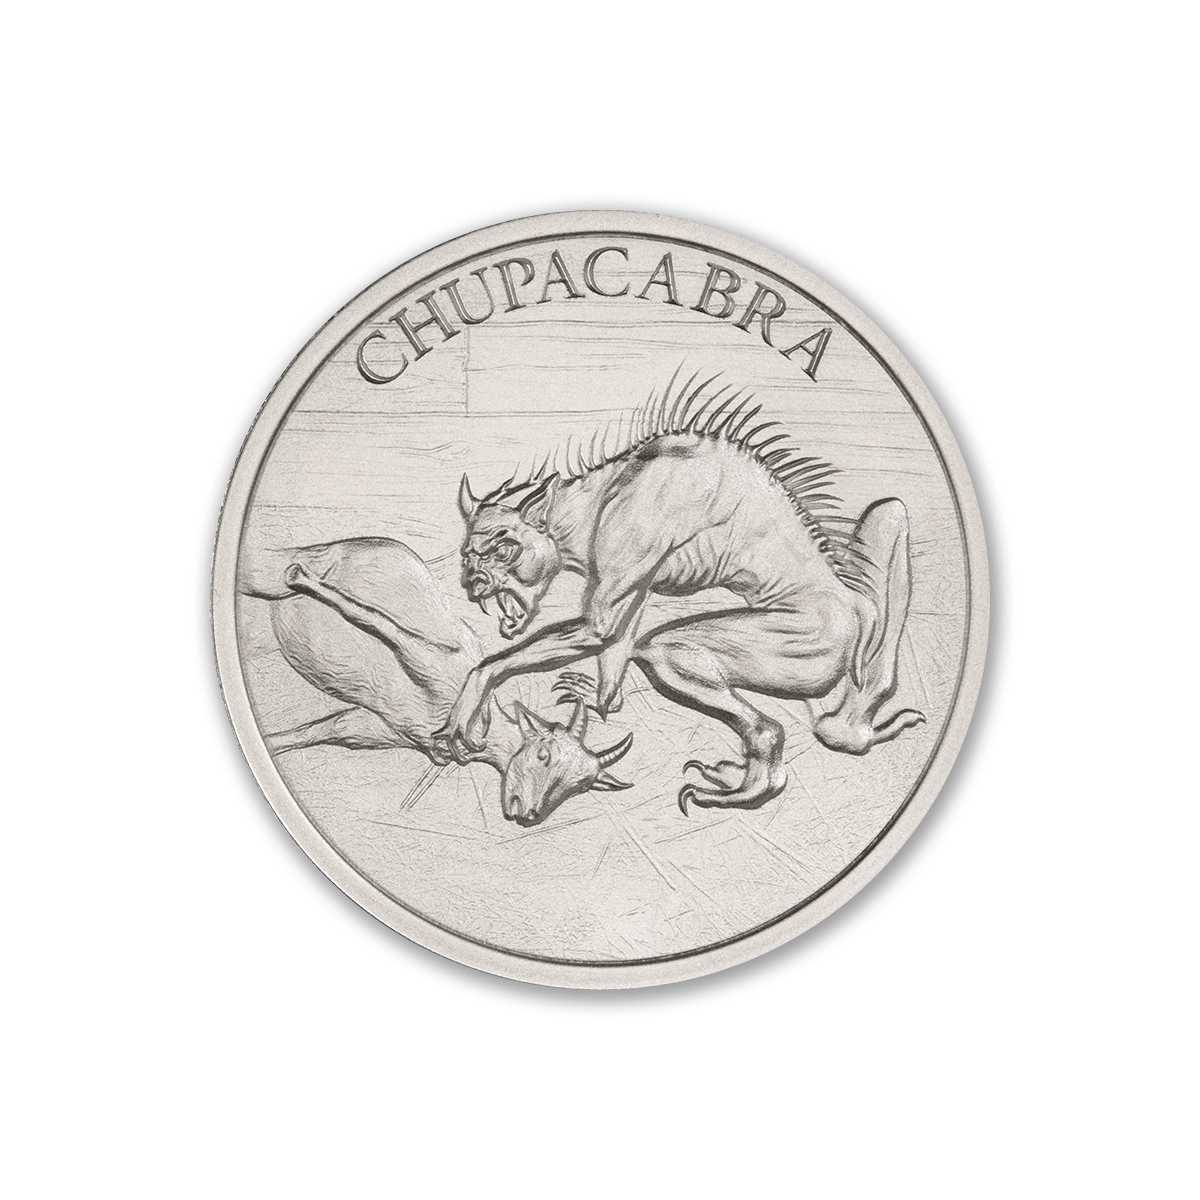 2021 – CHUPACABRA – 1 TROY OUNCE – 39MM